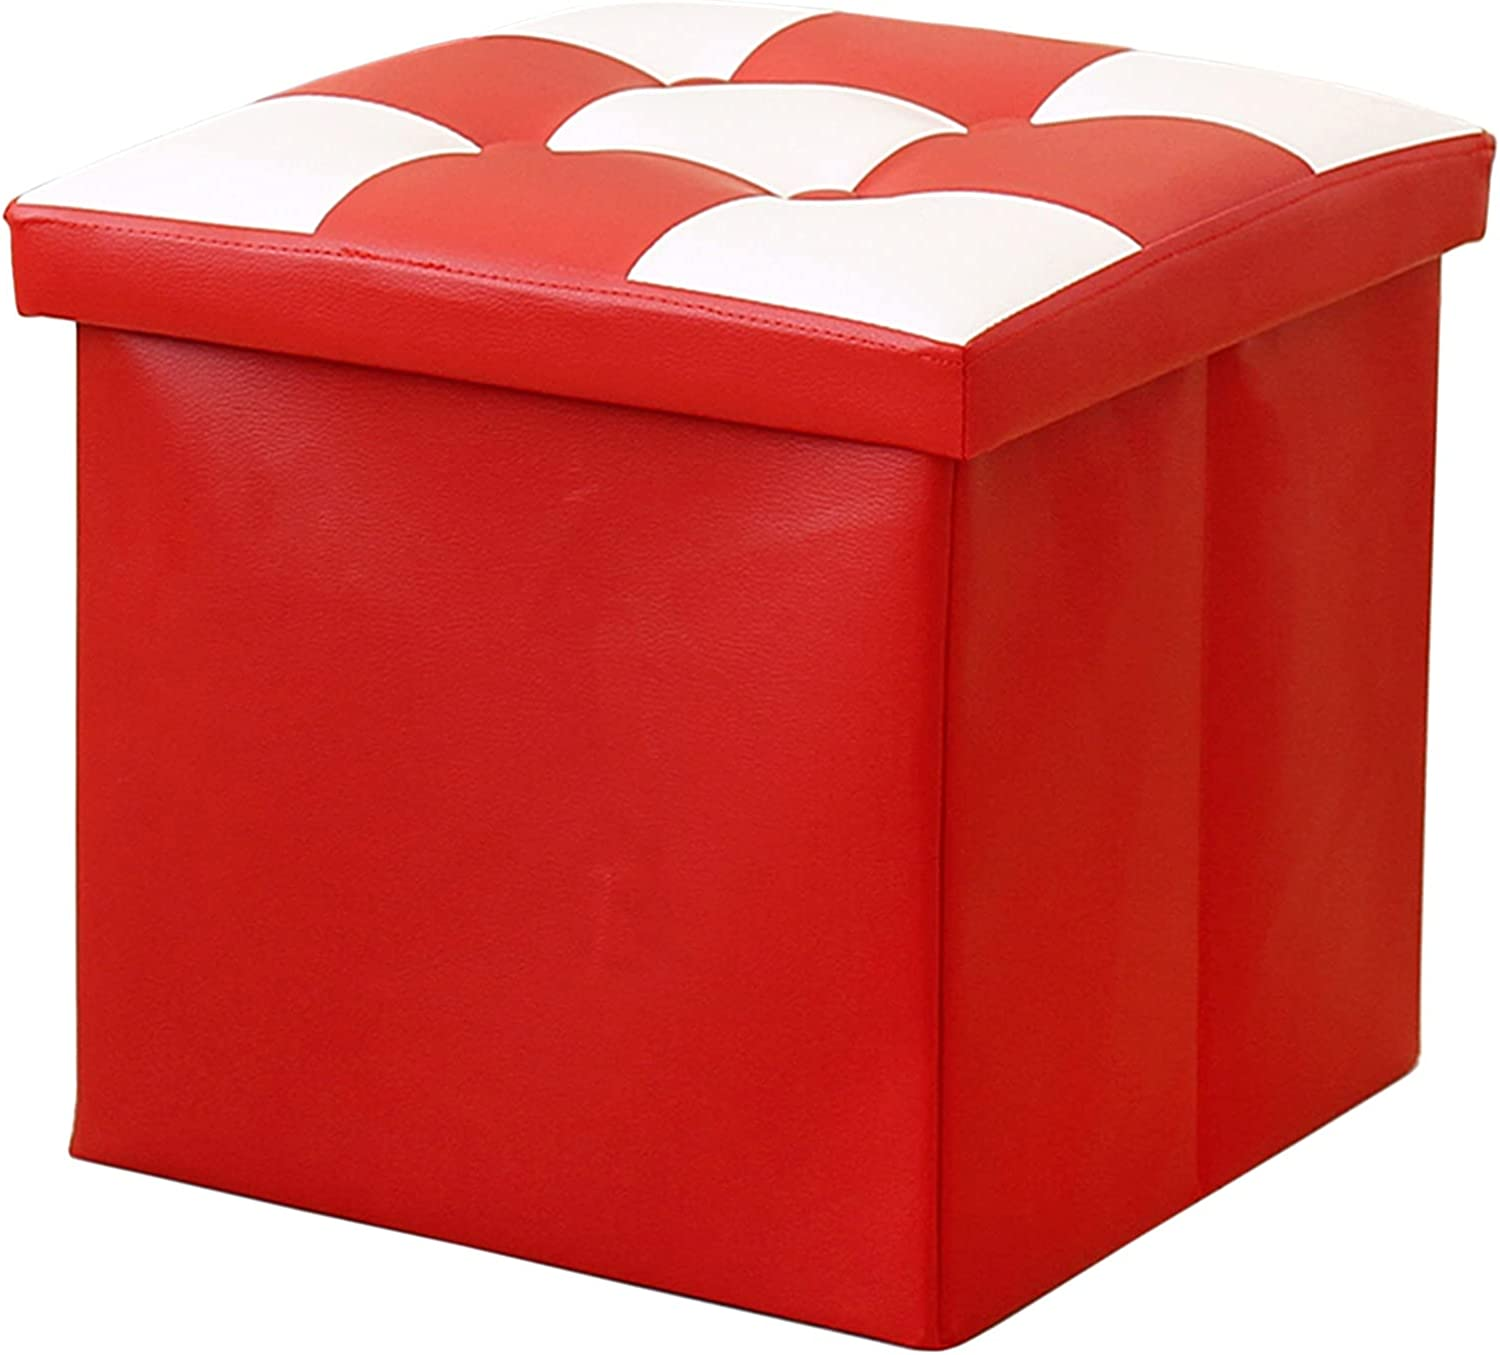 New life 38cm Cube Storage Ottoman Bench Padded 54L Small with Trust Footrest